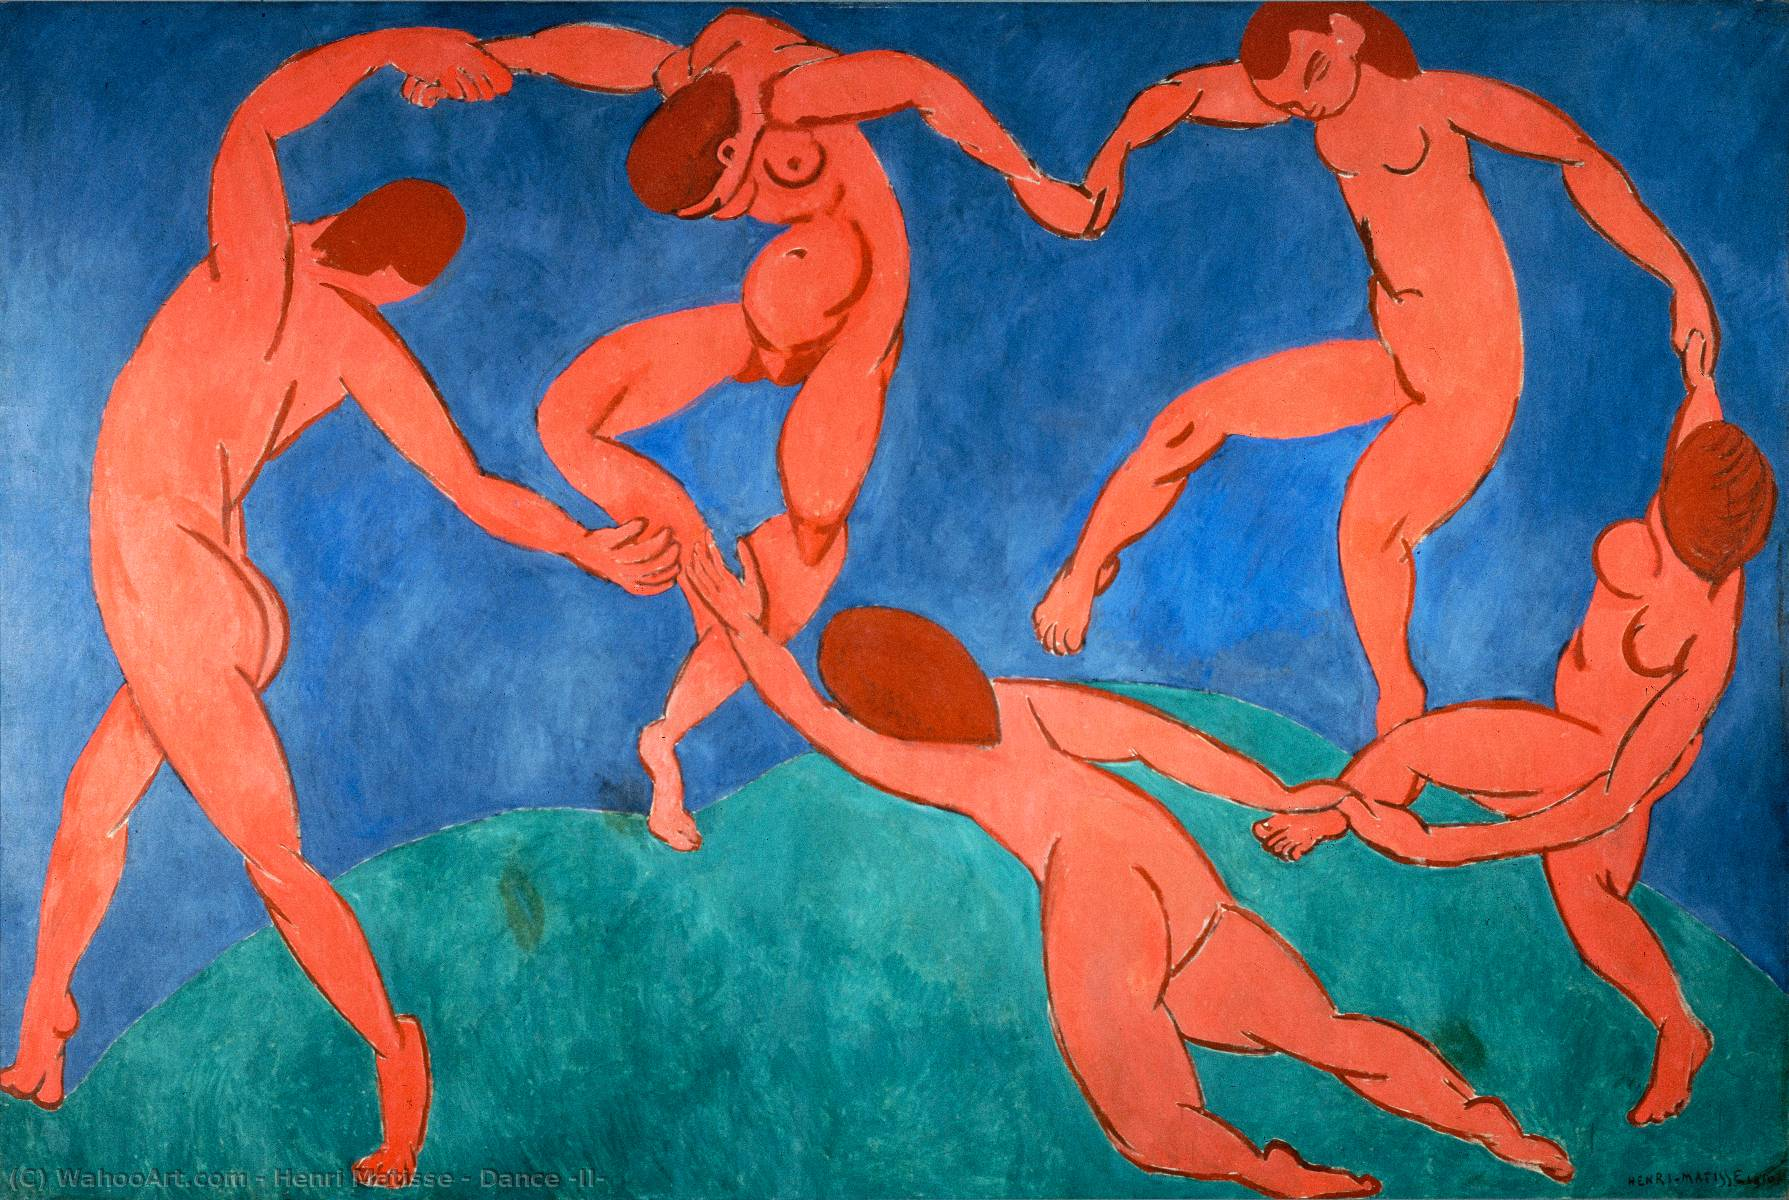 Dance (II), 1910 by Henri Matisse